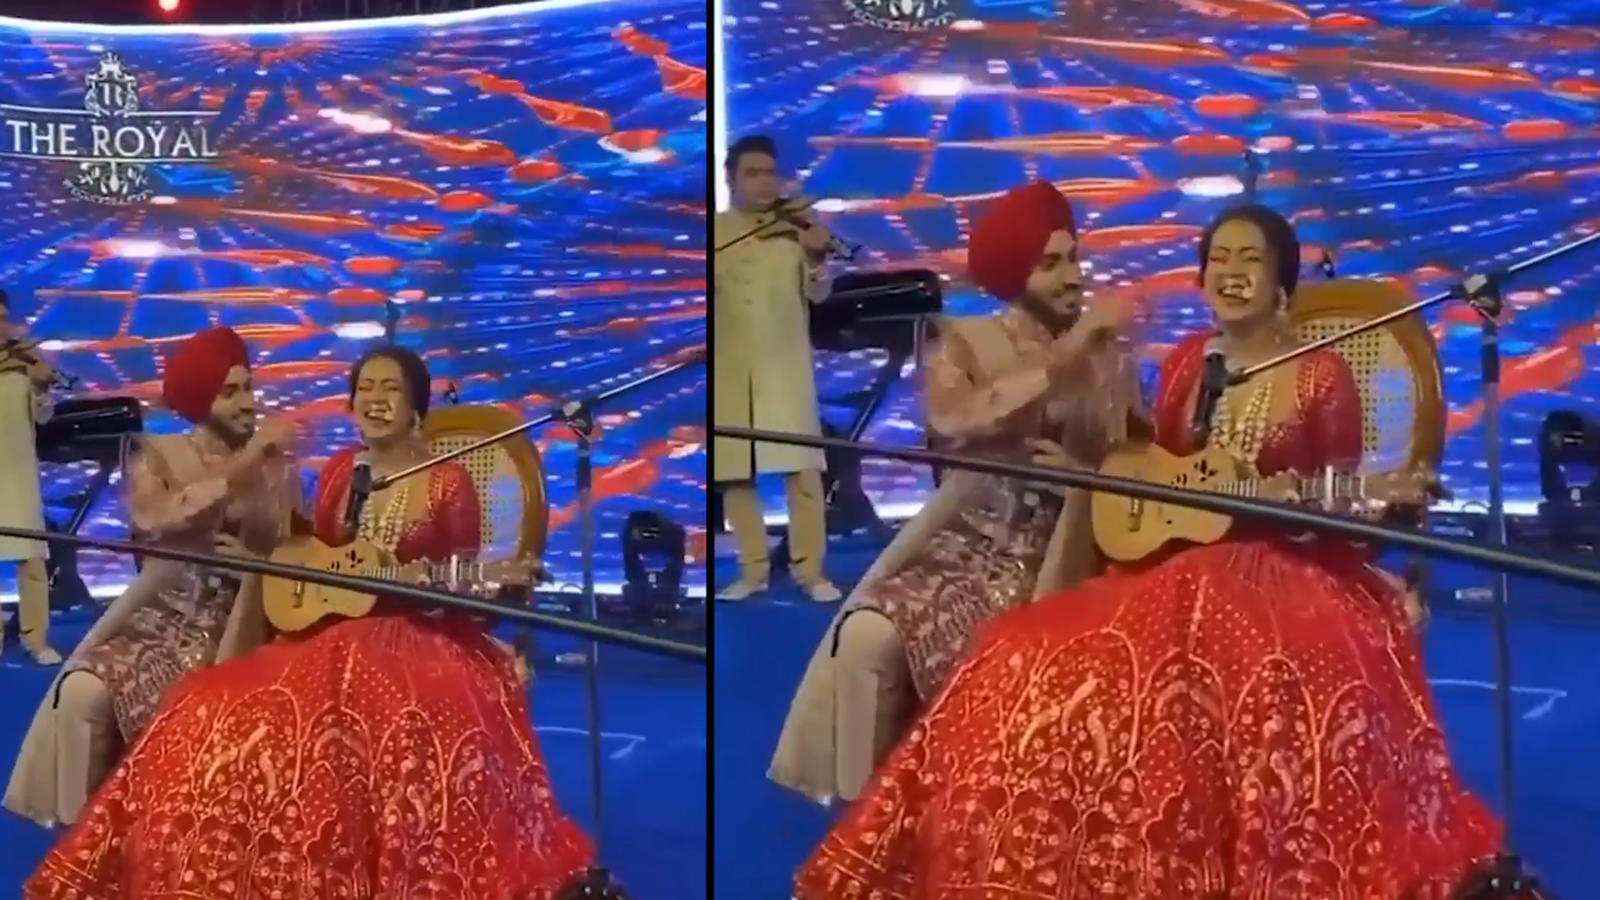 viral-video-neha-kakkars-husband-rohanpreet-singh-singing-for-his-wifey-on-stage-is-too-precious-to-miss